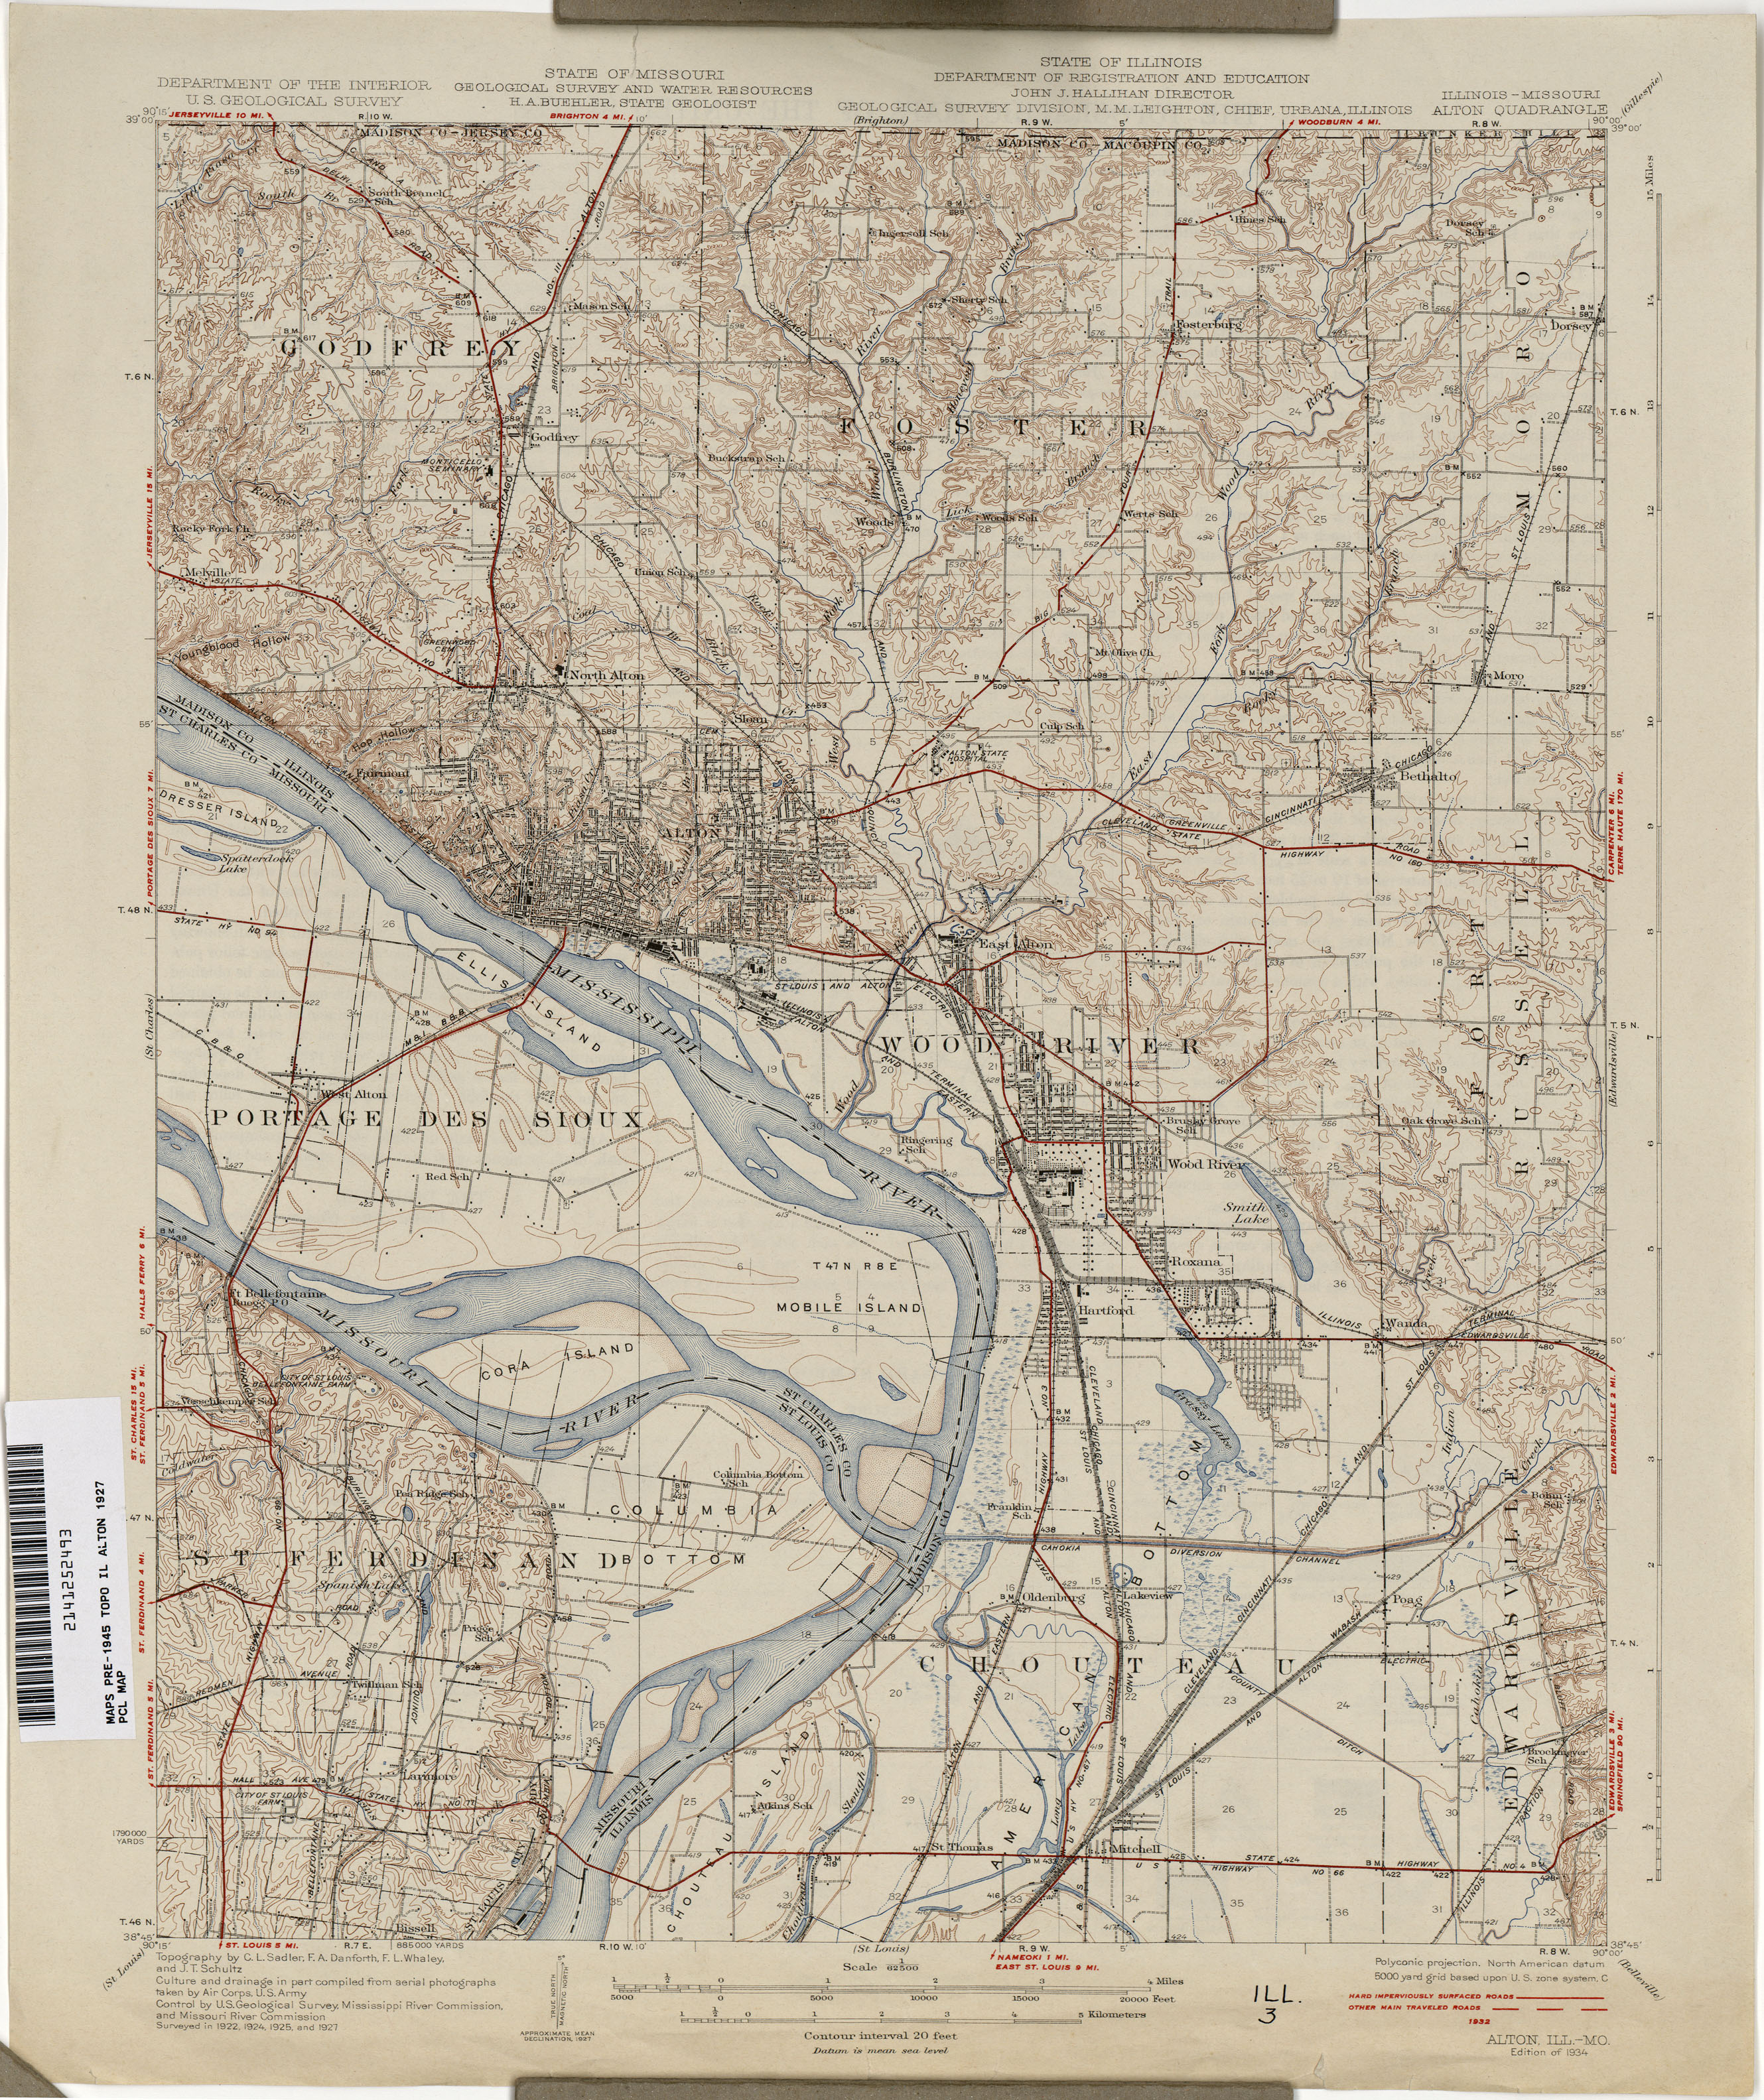 Illinois Historical Topographic Maps - Perry-Castañeda Map - Printable Map Of Rockford Il